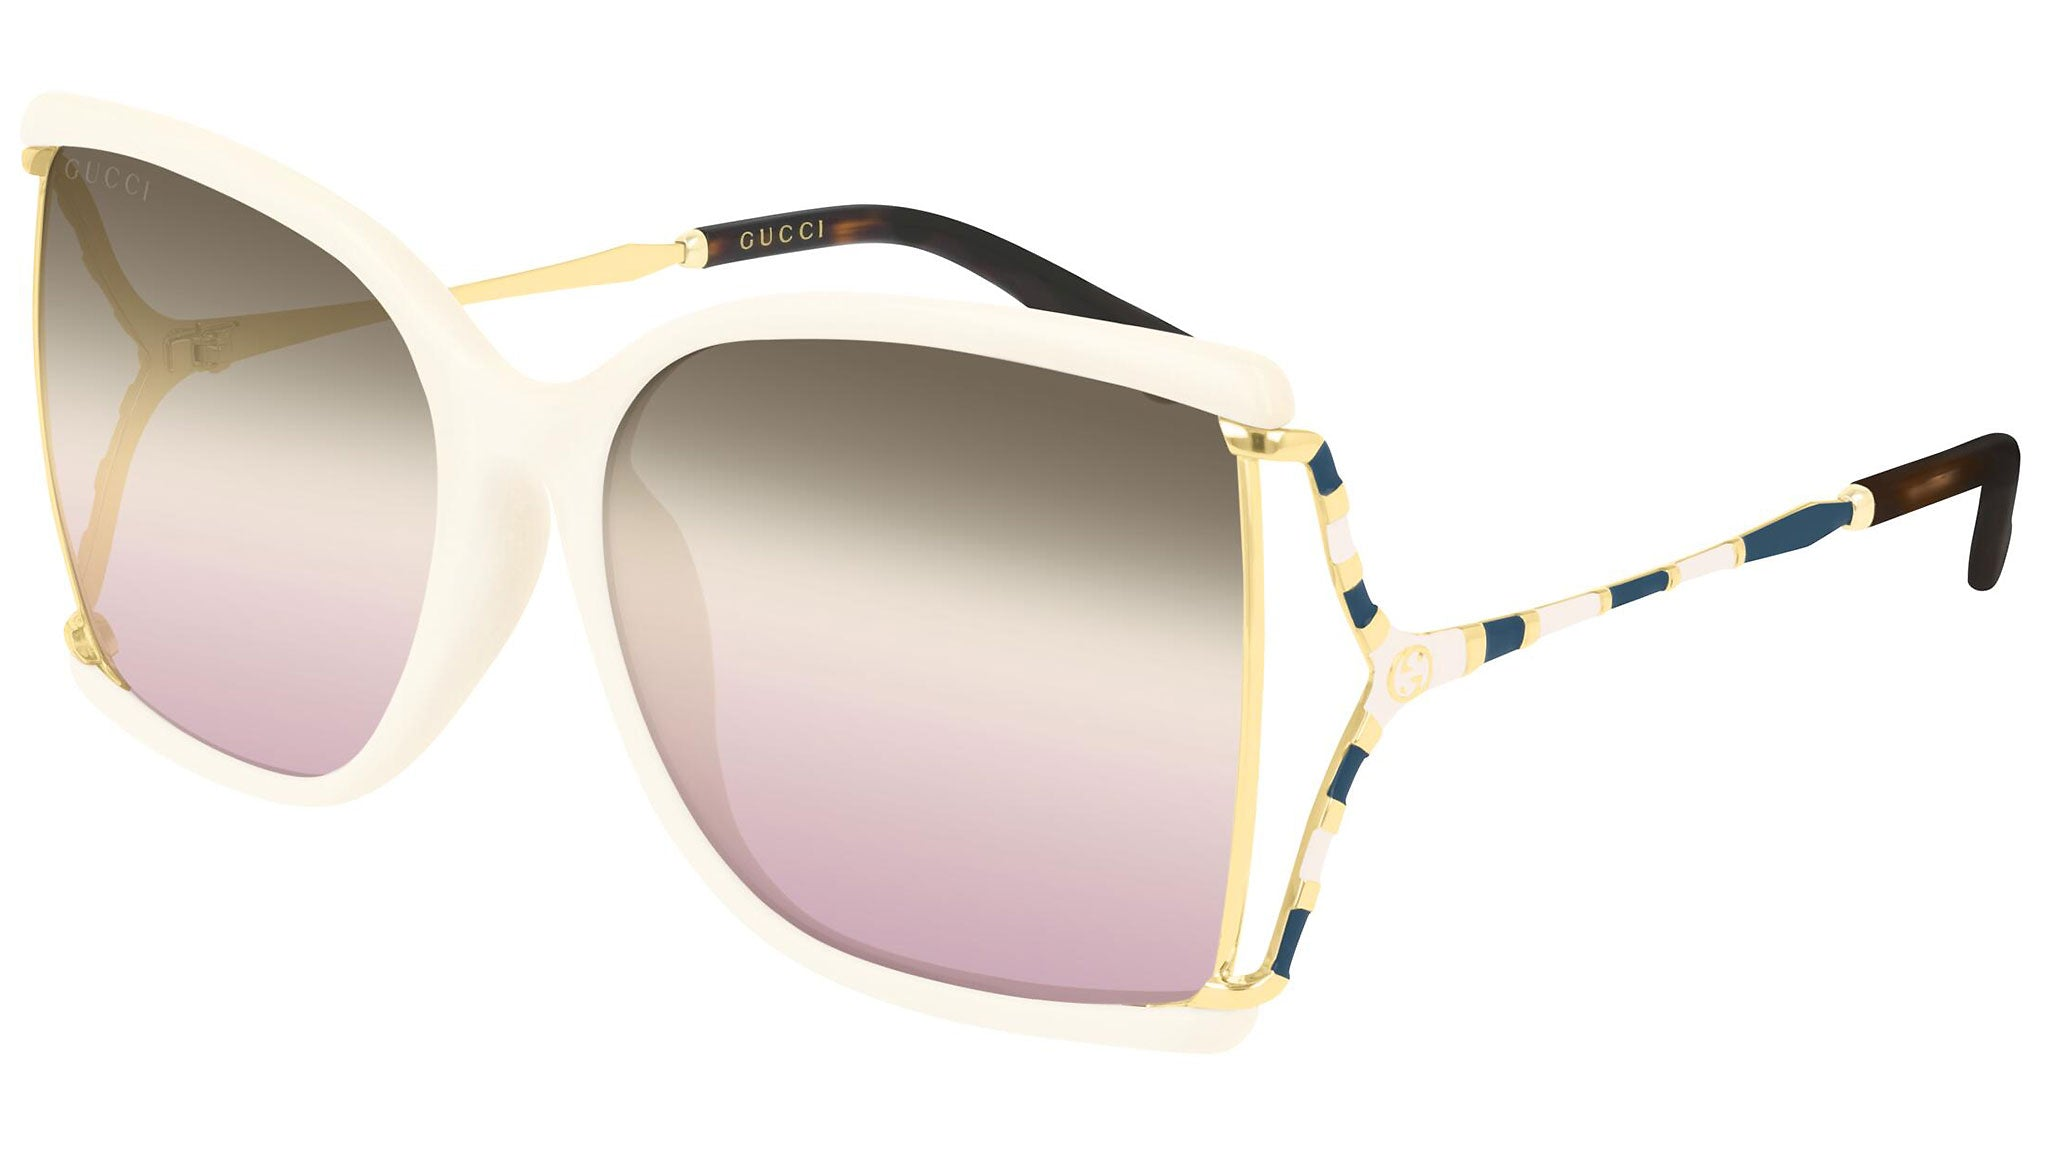 GG0592SK gold ivory and triple grey/ pink